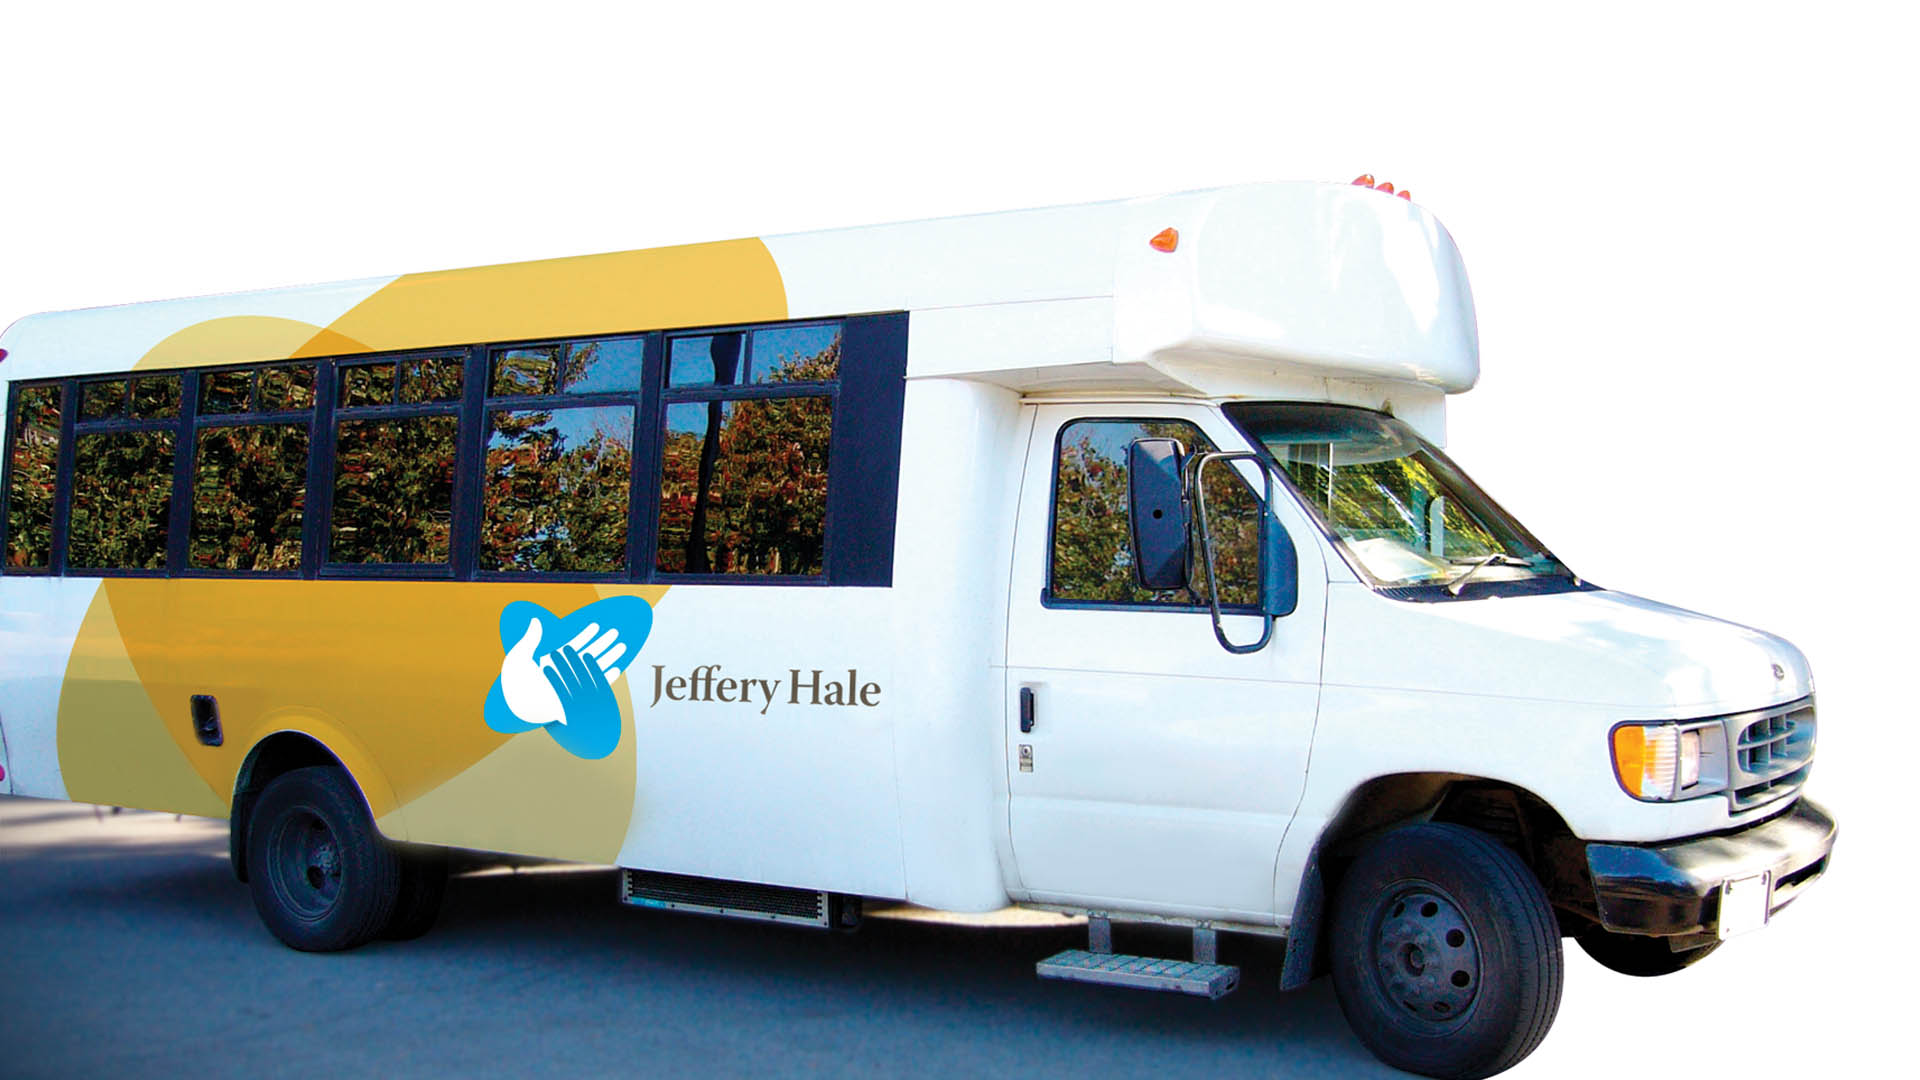 Jeffrey Hale Hospital fleet and vehicle, bus, van, design, brand identity, brand experience